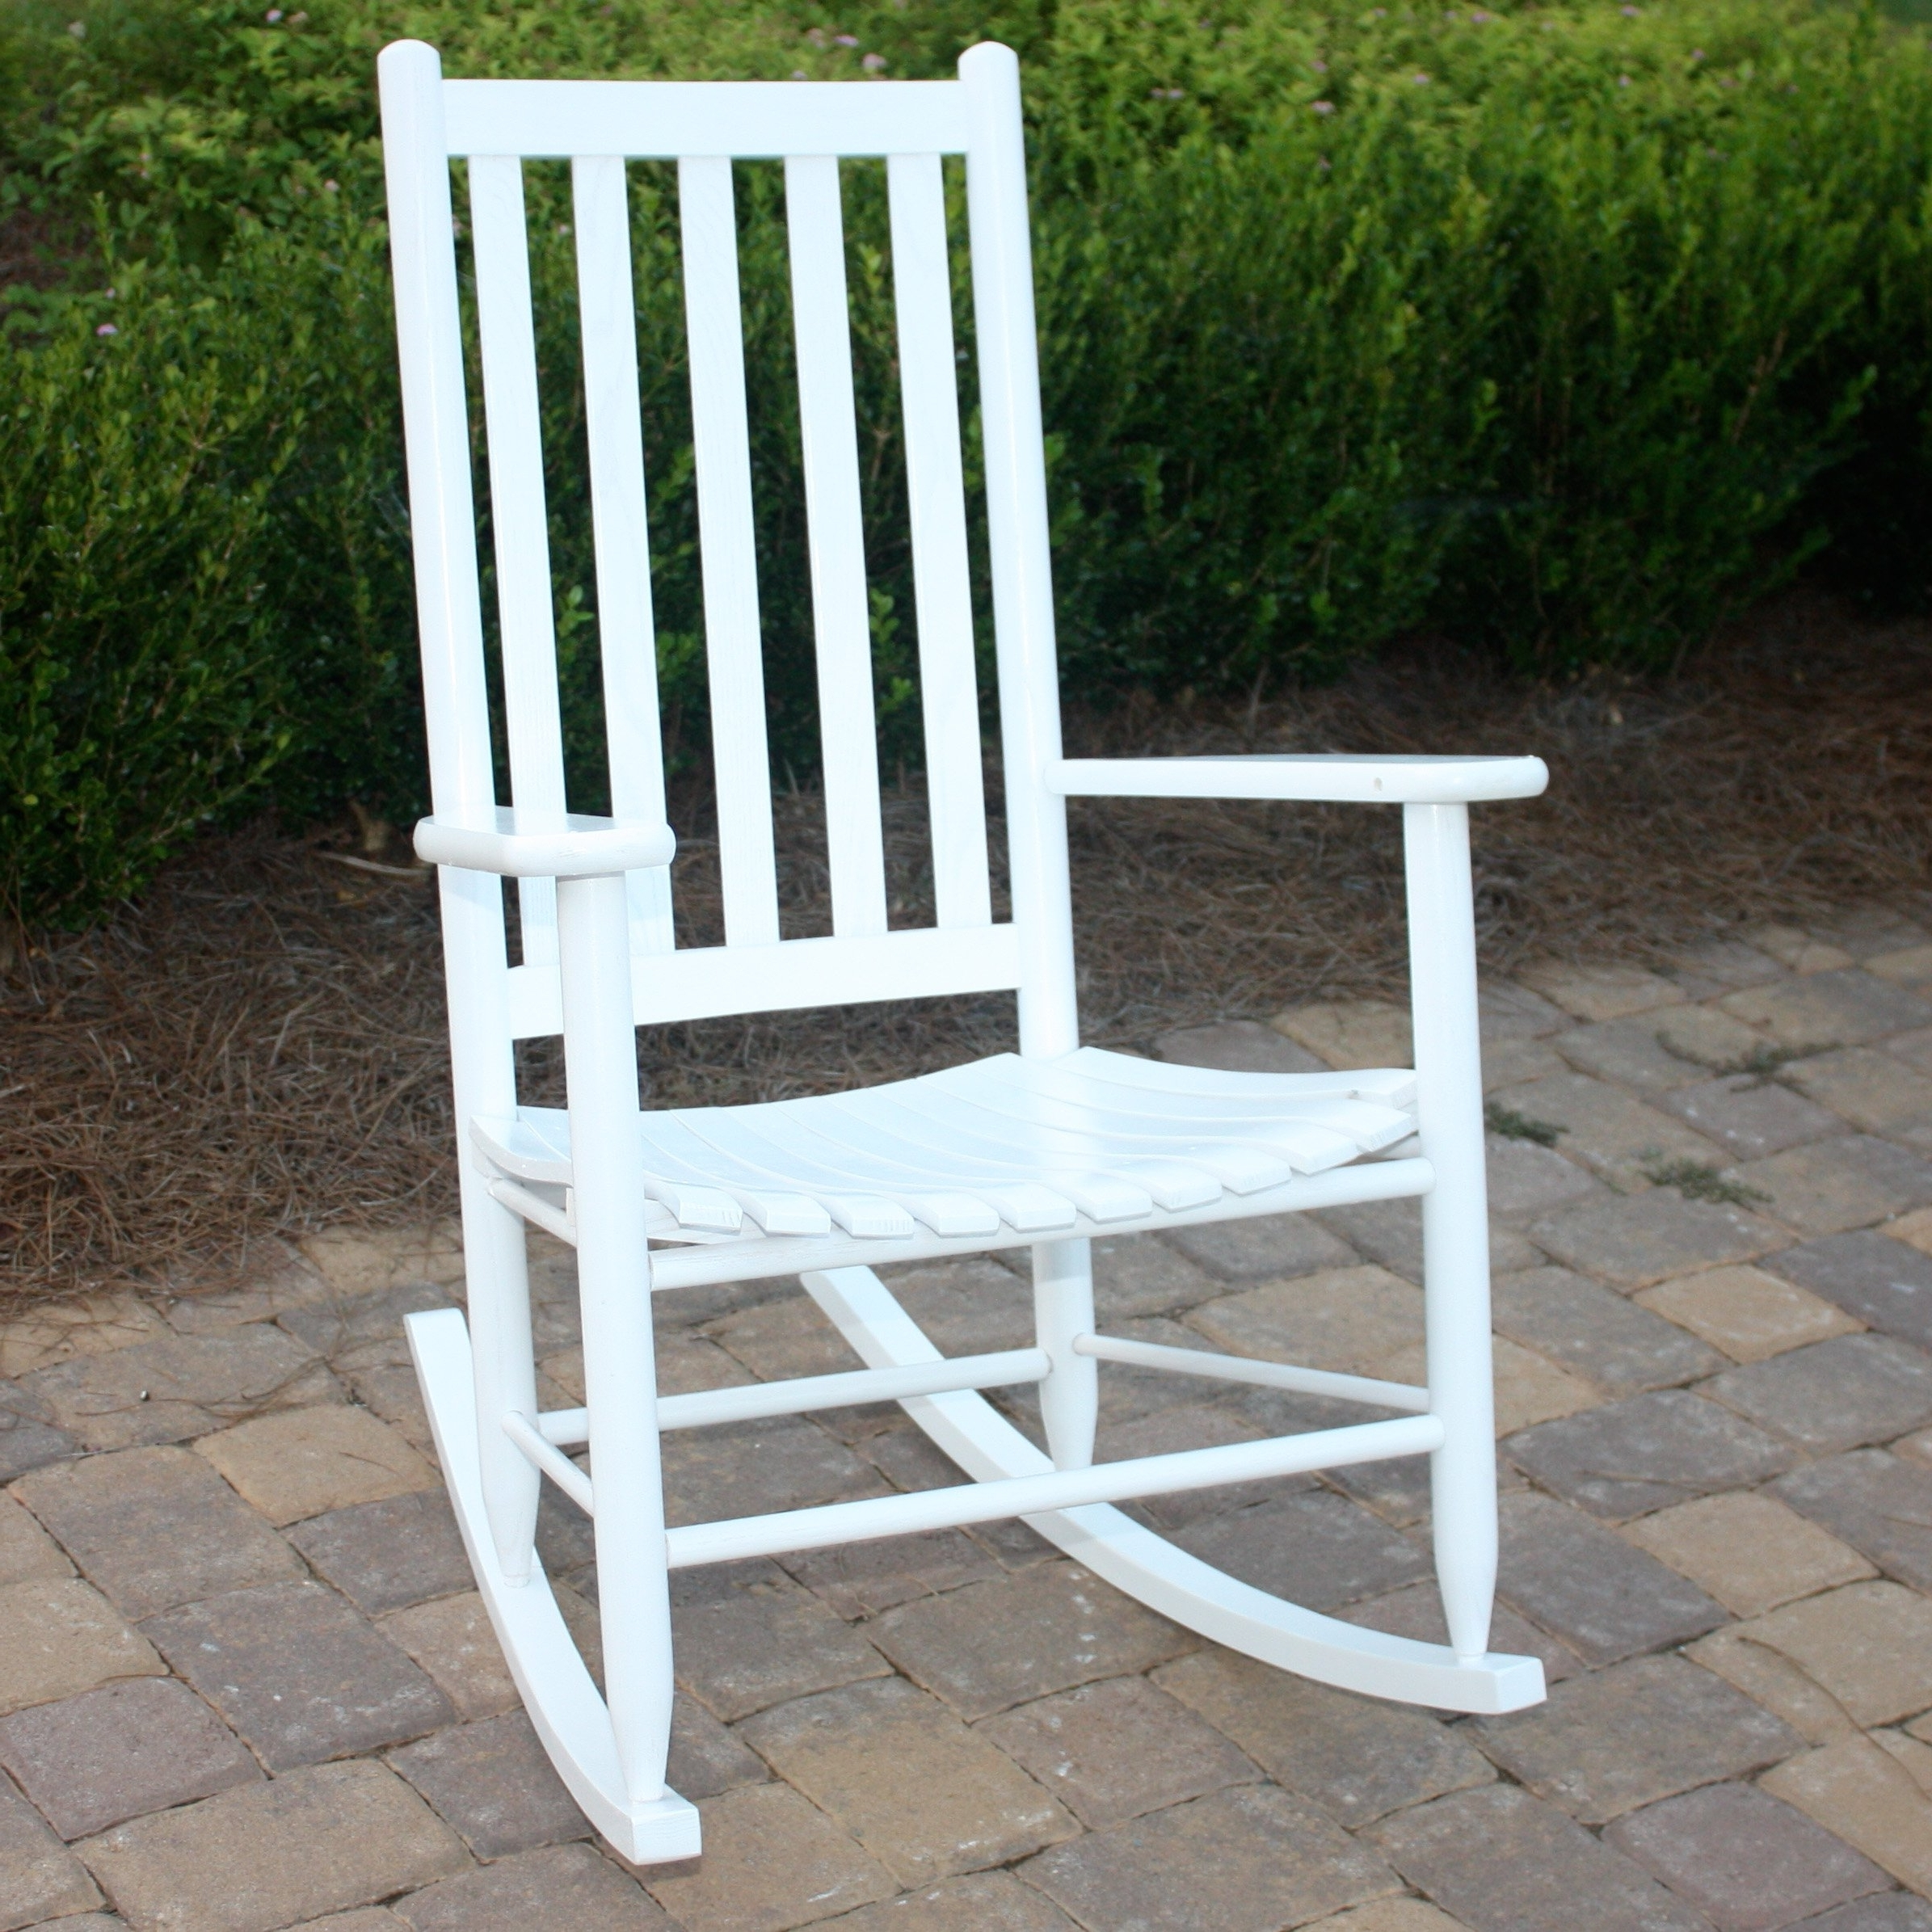 Dixie Seating Company Outdoor/indoor Georgetown Slat Rocking Chair With Well Liked Outdoor Rocking Chairs (View 14 of 15)